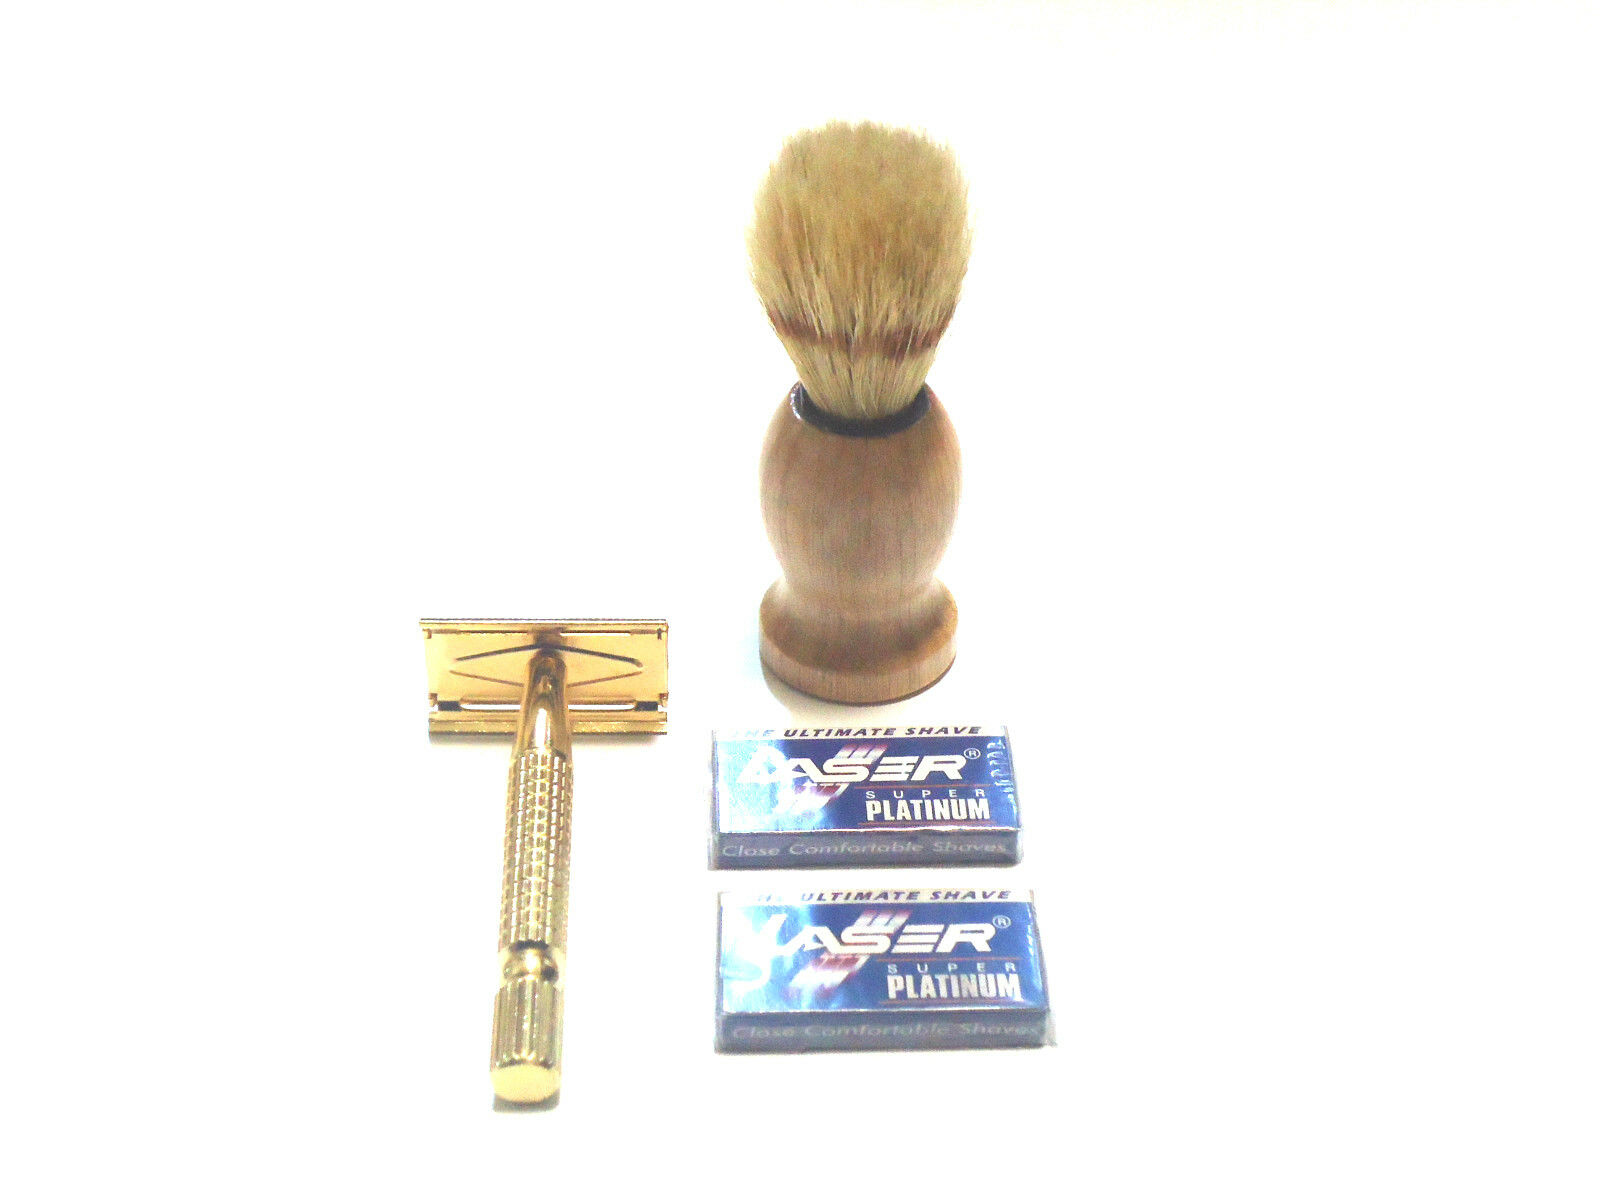 Printable Coupons, Grocery Coupon Codes Coupons Old fashioned shave philadelphia